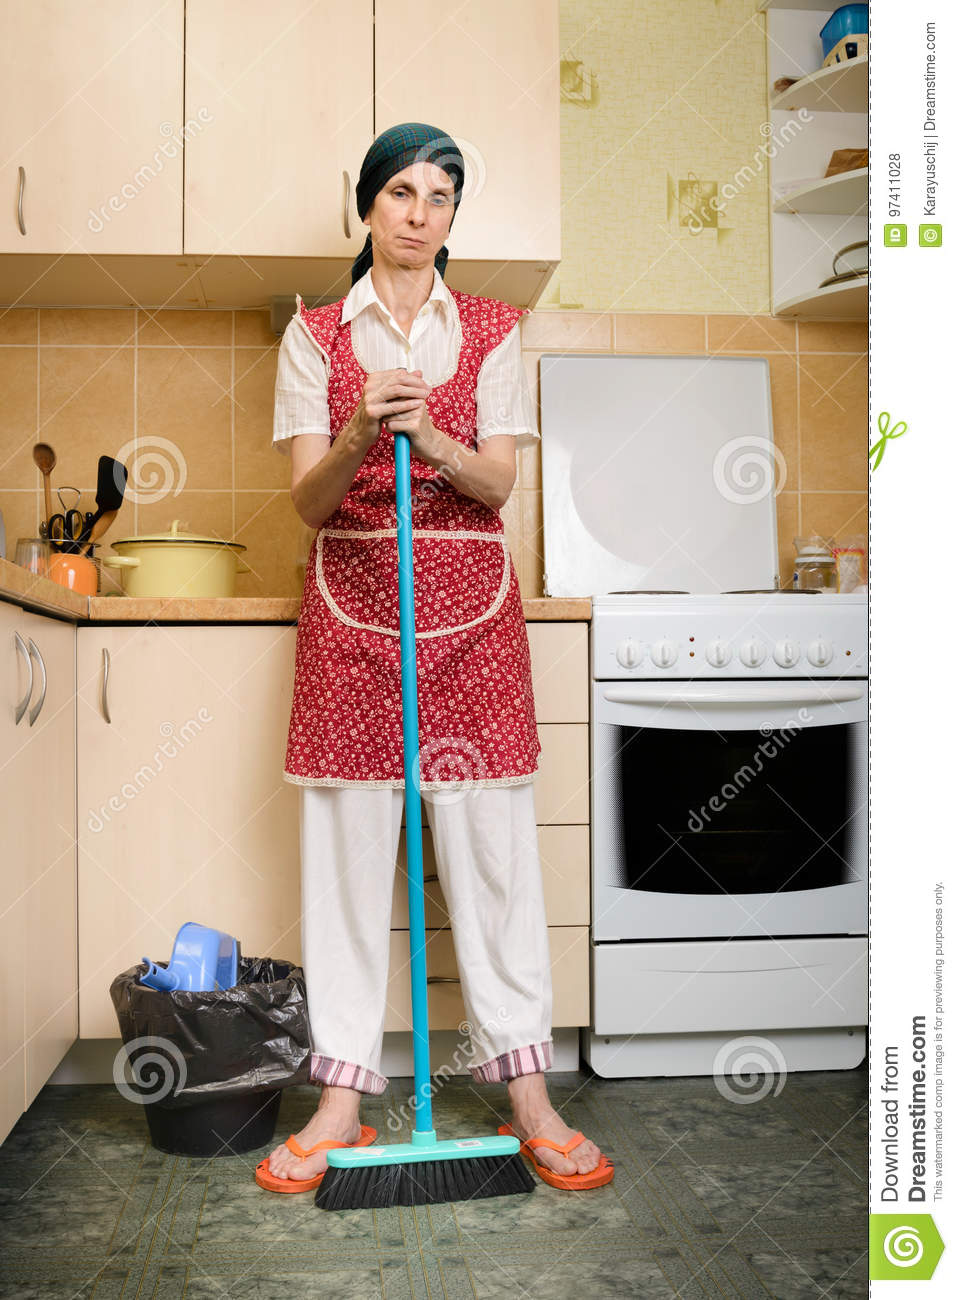 woman with a broom in the kitchen stock photo - image of